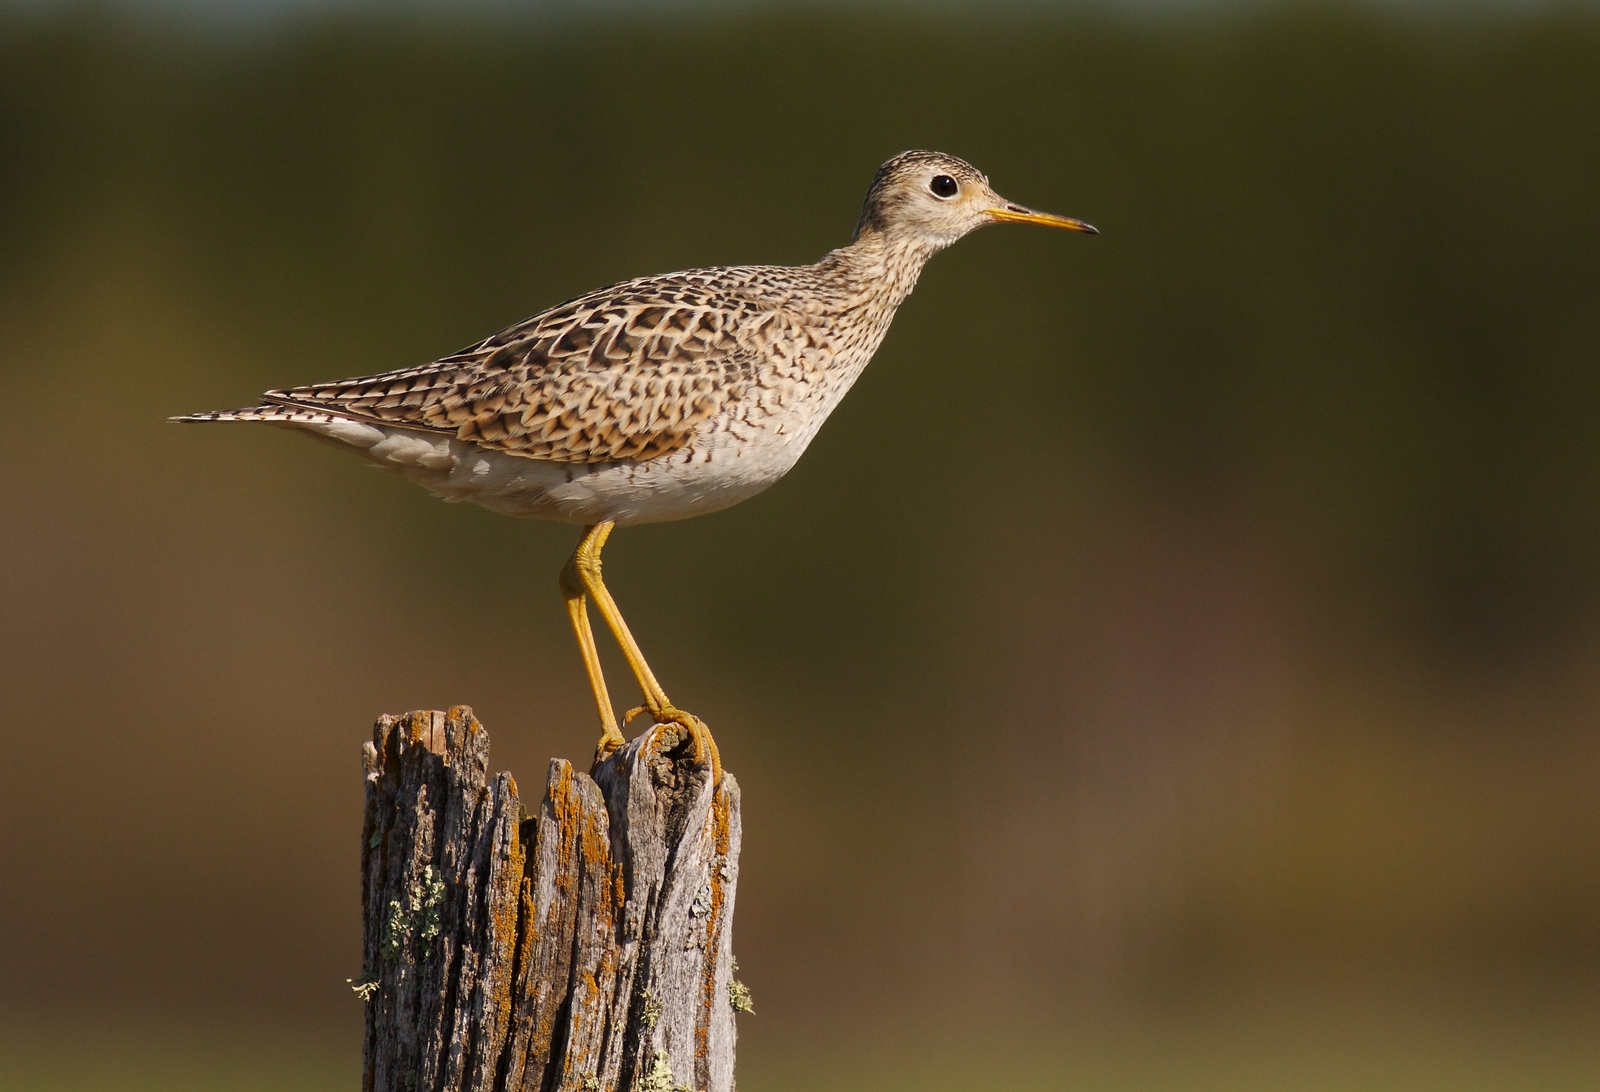 Upland Sandpipers are declining due to habitat loss. Their preferred breeding sites are sloping, hilly grasslands, but they will feed in flat soy bean fields as well [May 16; CR102 southeast of Wrenshall, Minnesota, Carlton County]